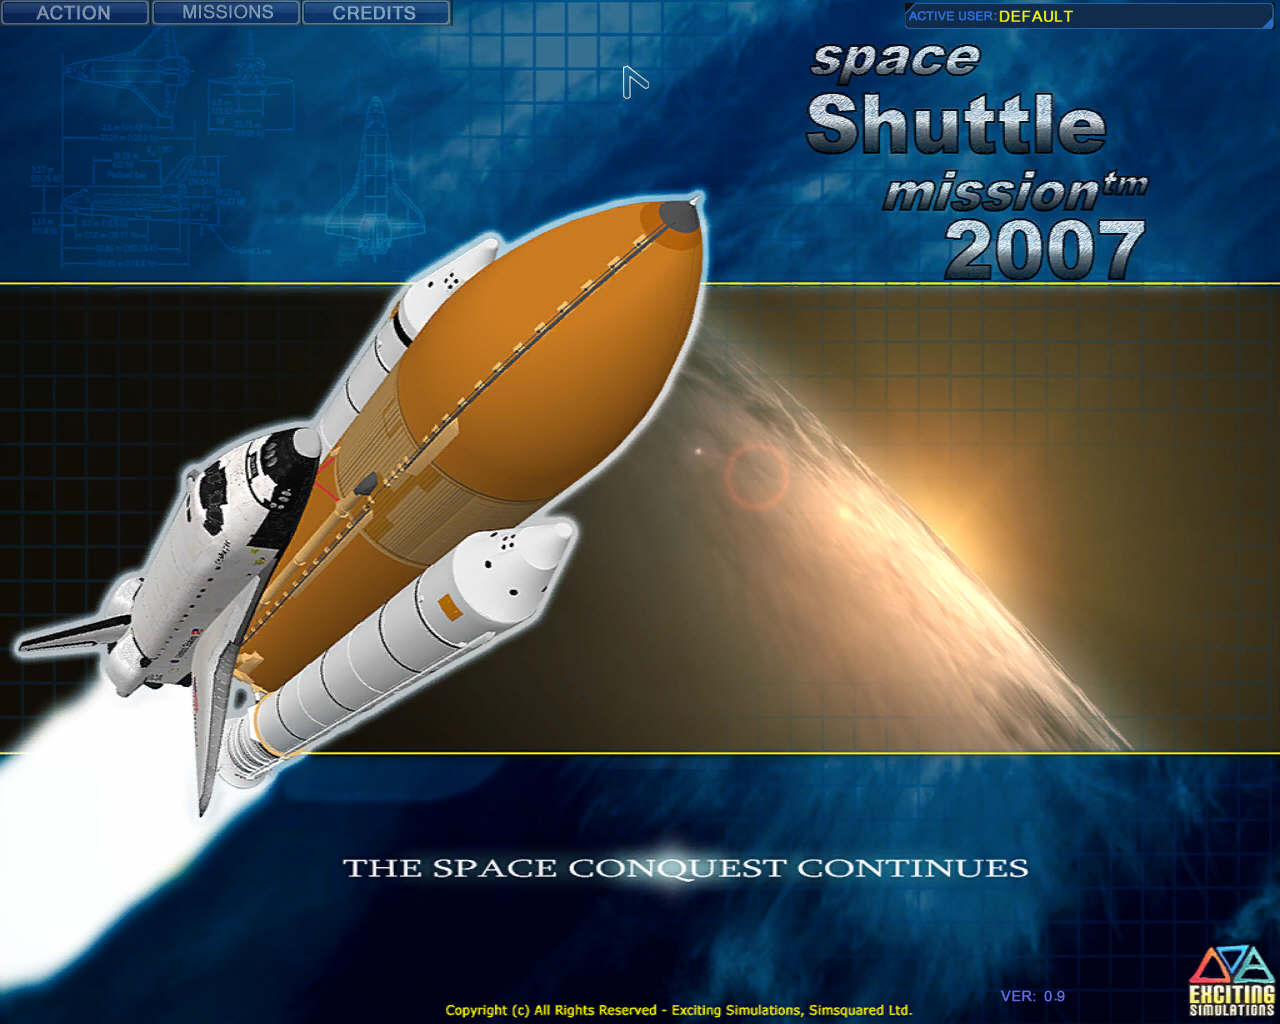 space shuttle research paper Space shuttle program research paper study guide by d_alekz includes 33 questions covering vocabulary, terms and more quizlet flashcards, activities and games help you improve your grades.